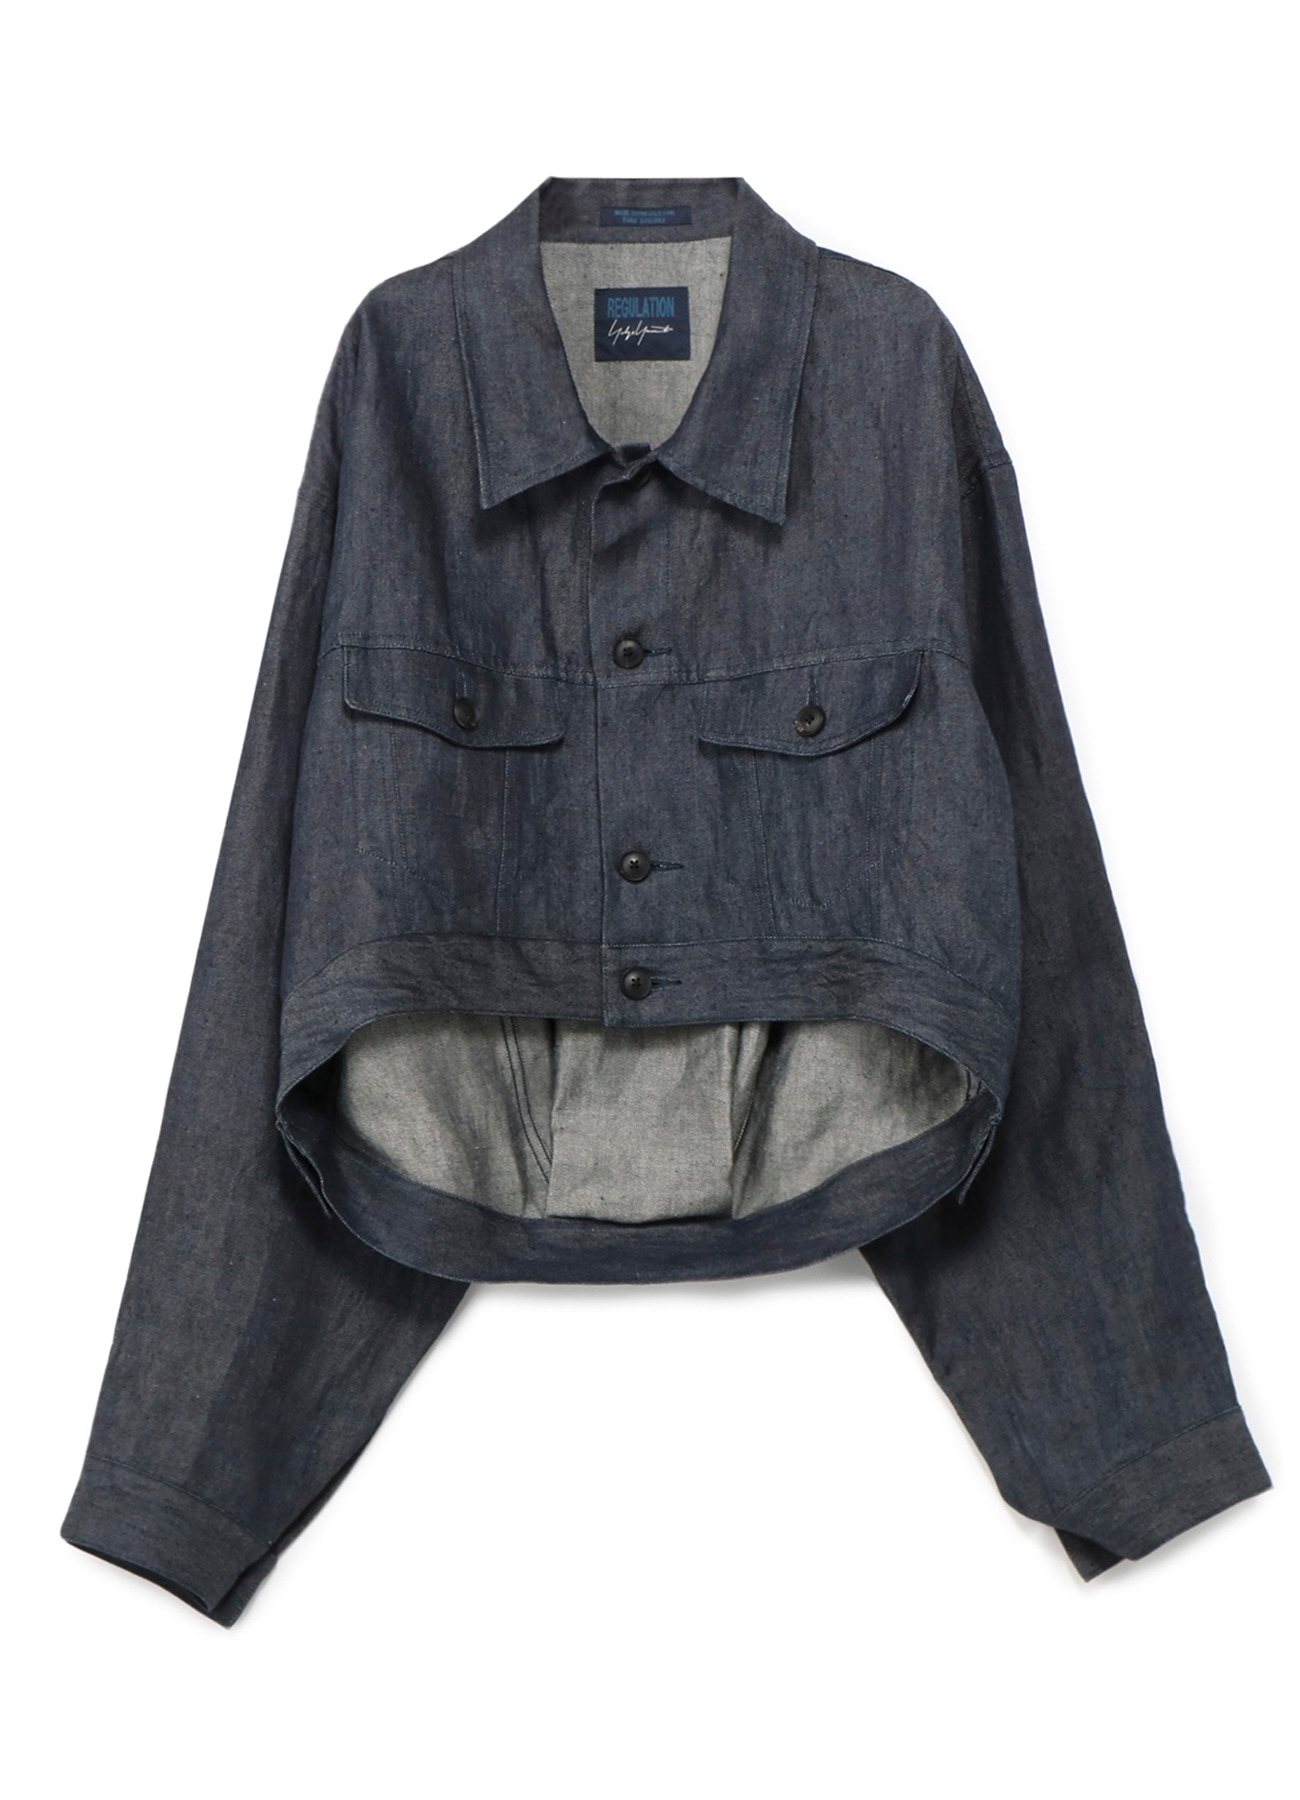 10 oz linen denim-short G jacket